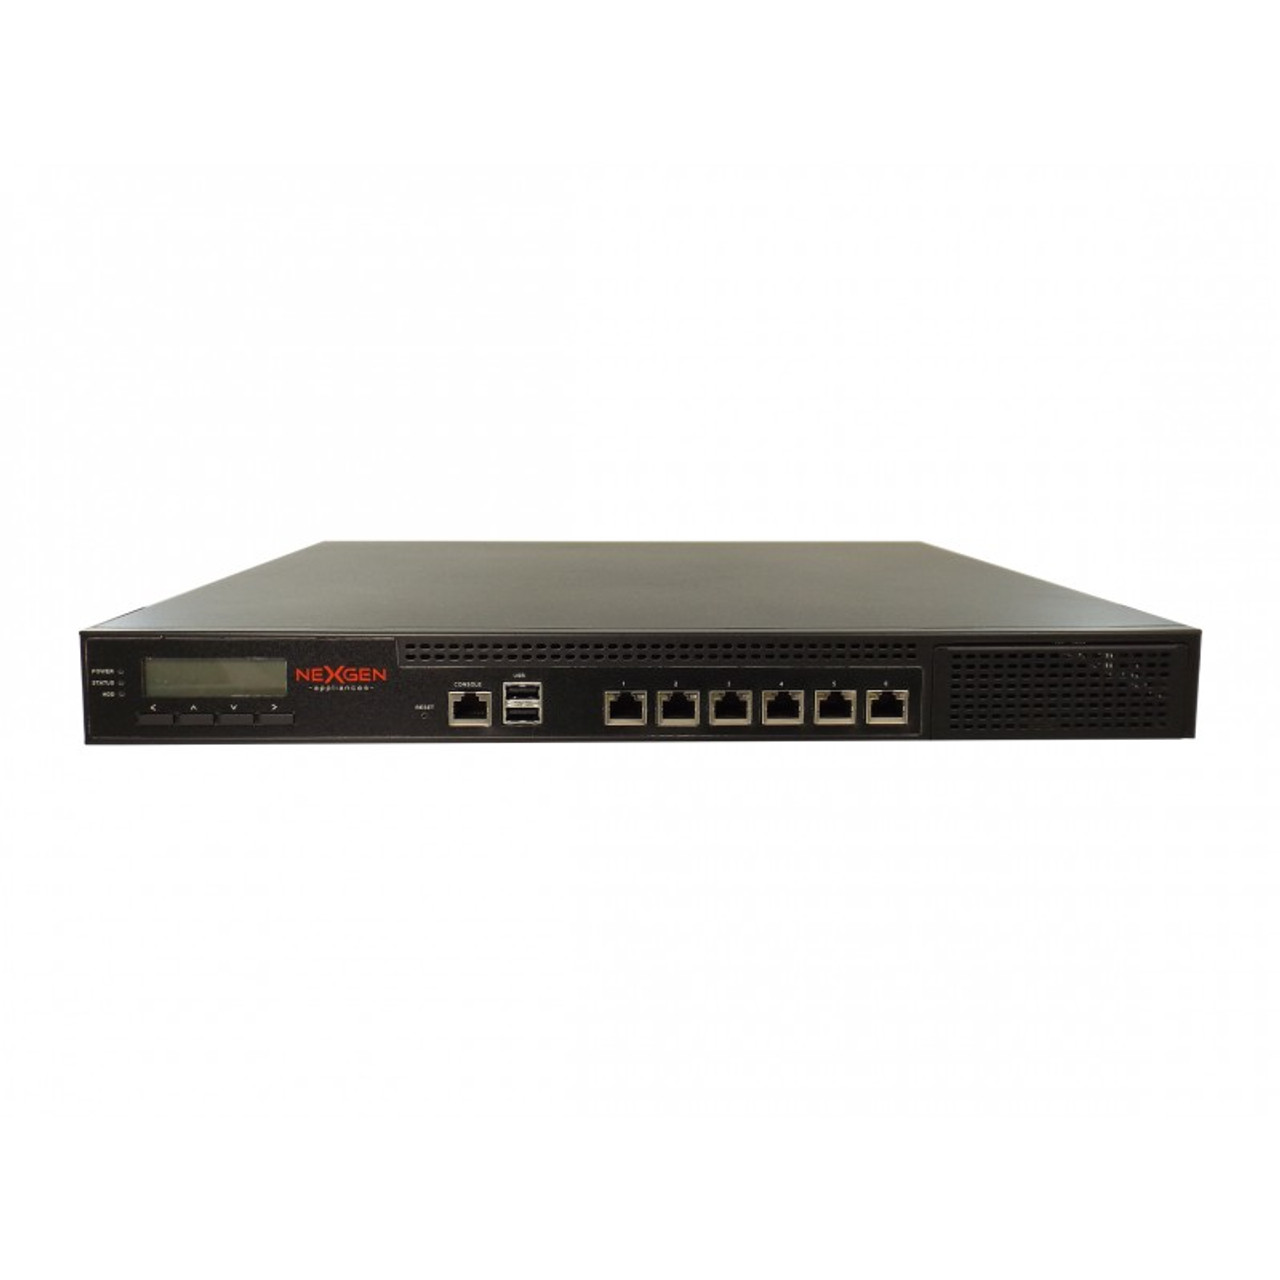 NG-1000 Firewall Appliance for pfSense / Vyatta / VyOS